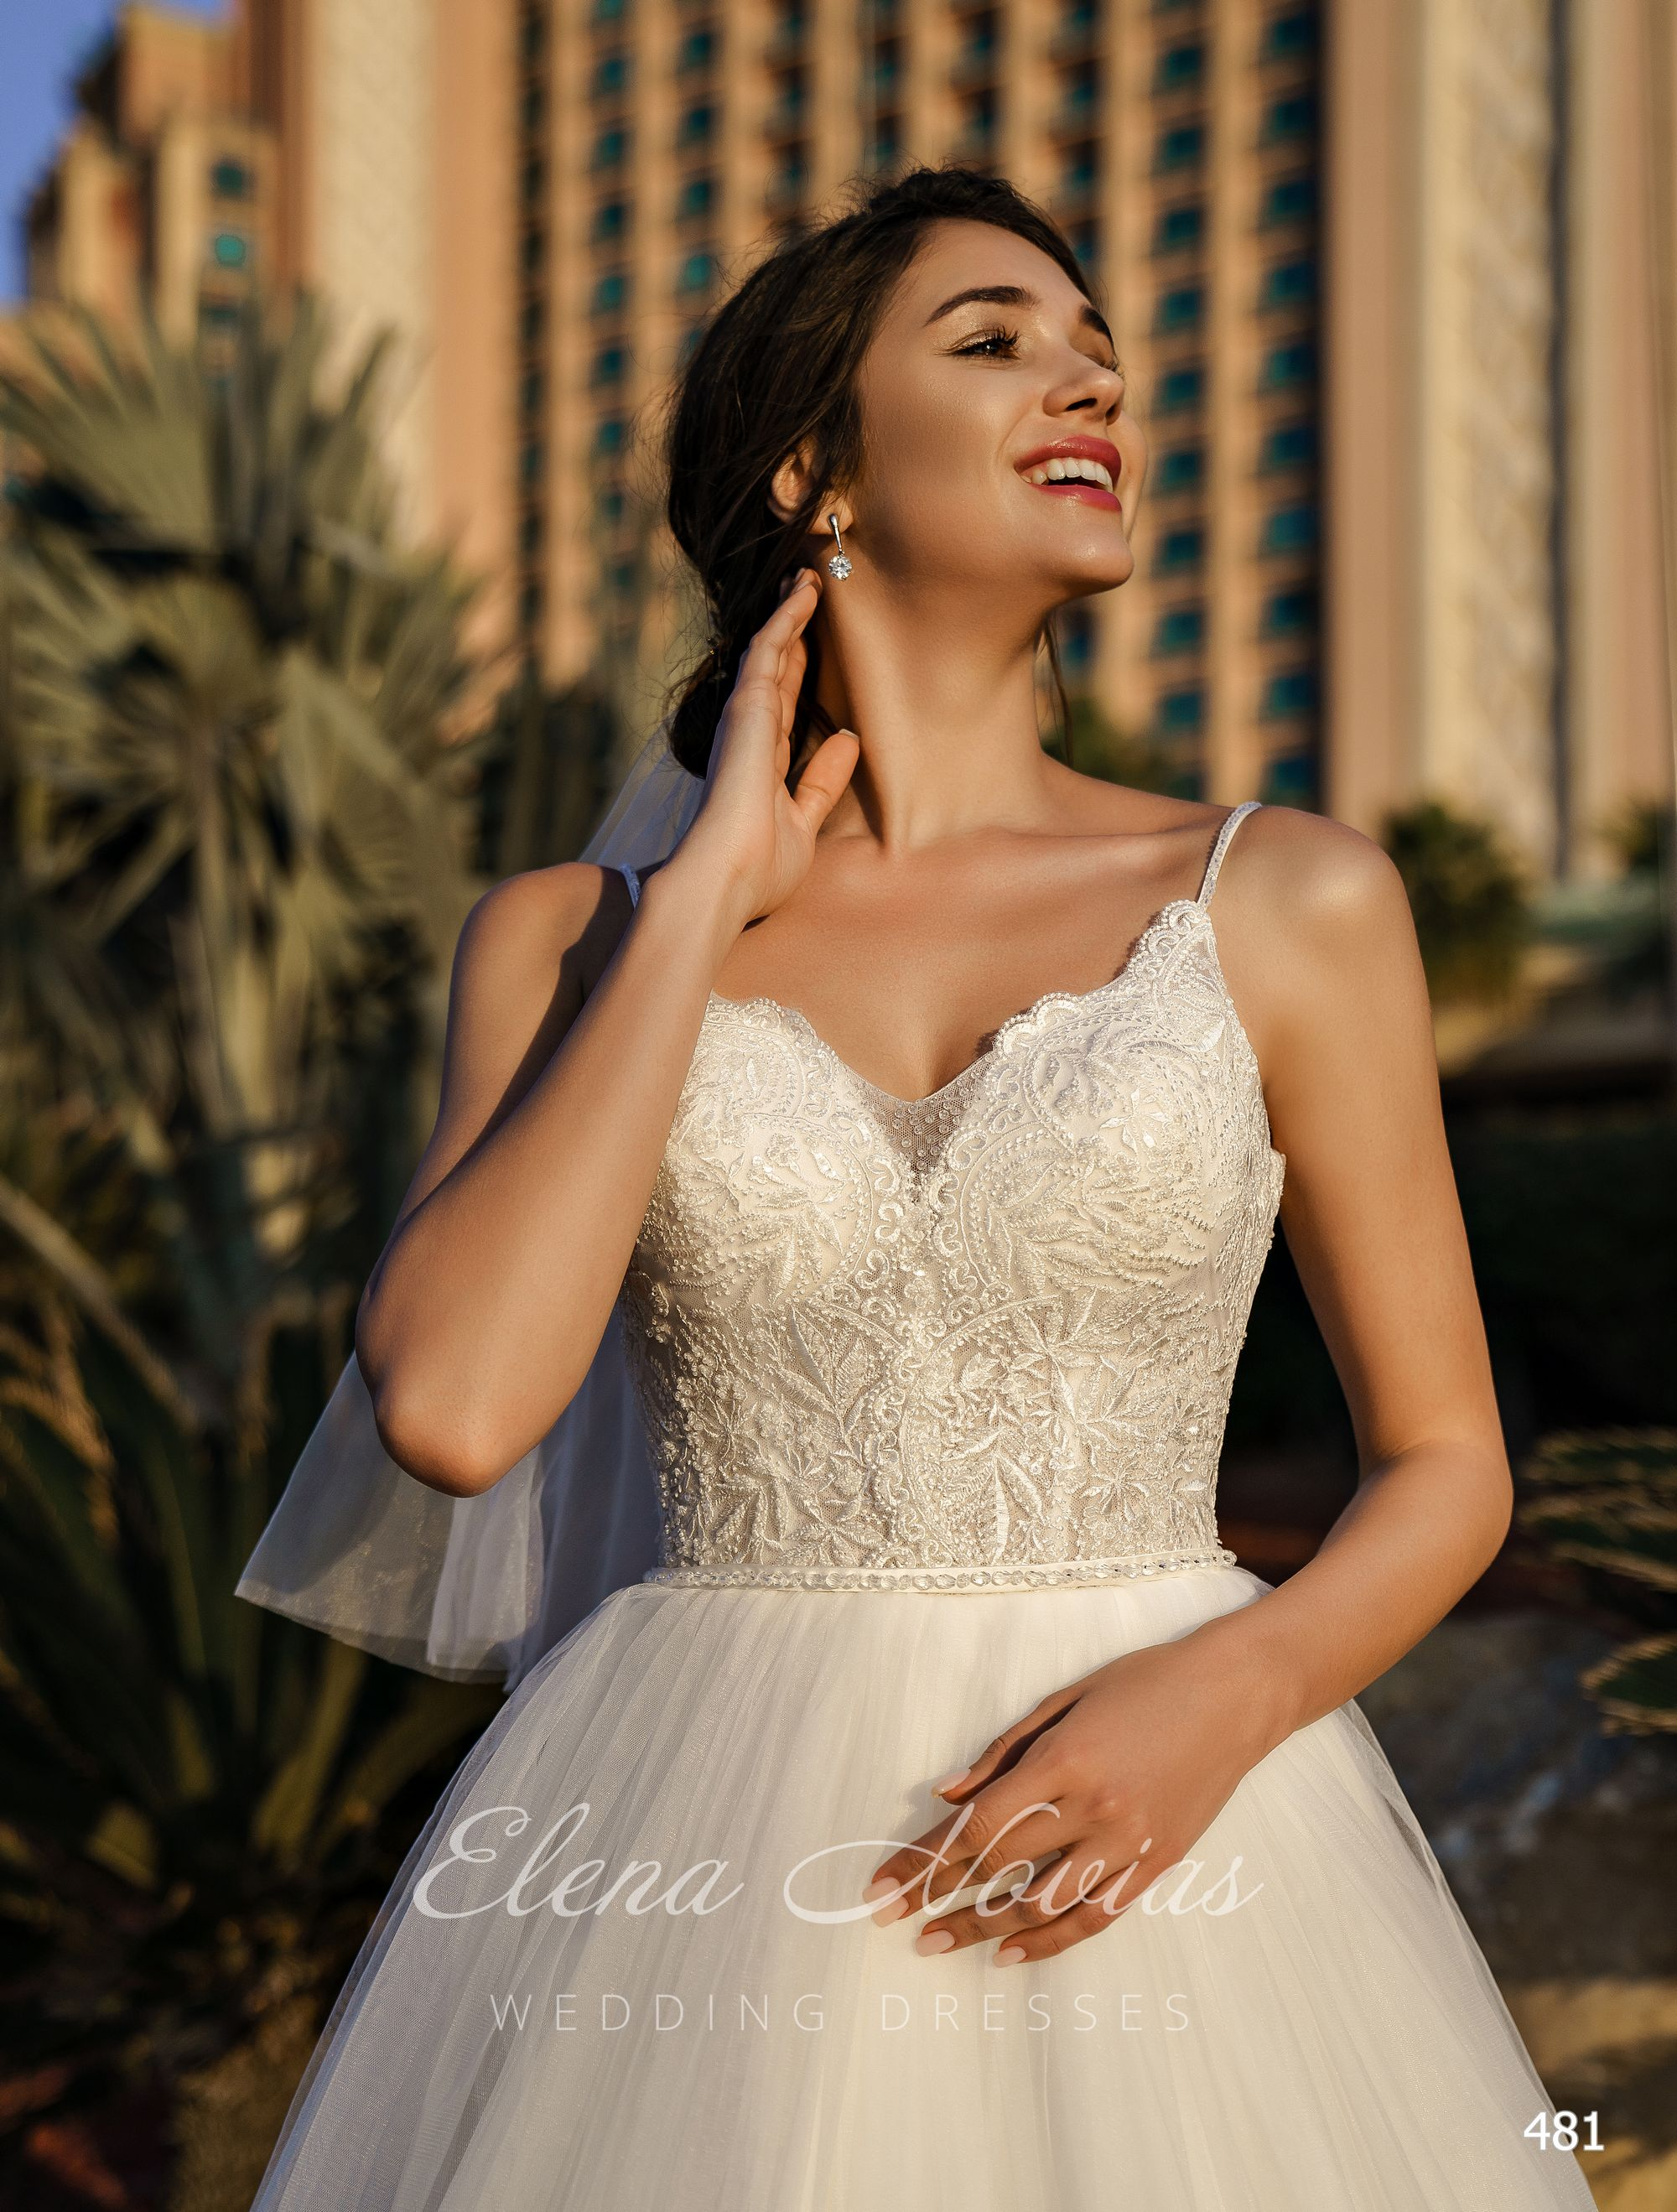 Wedding dresses 481 1